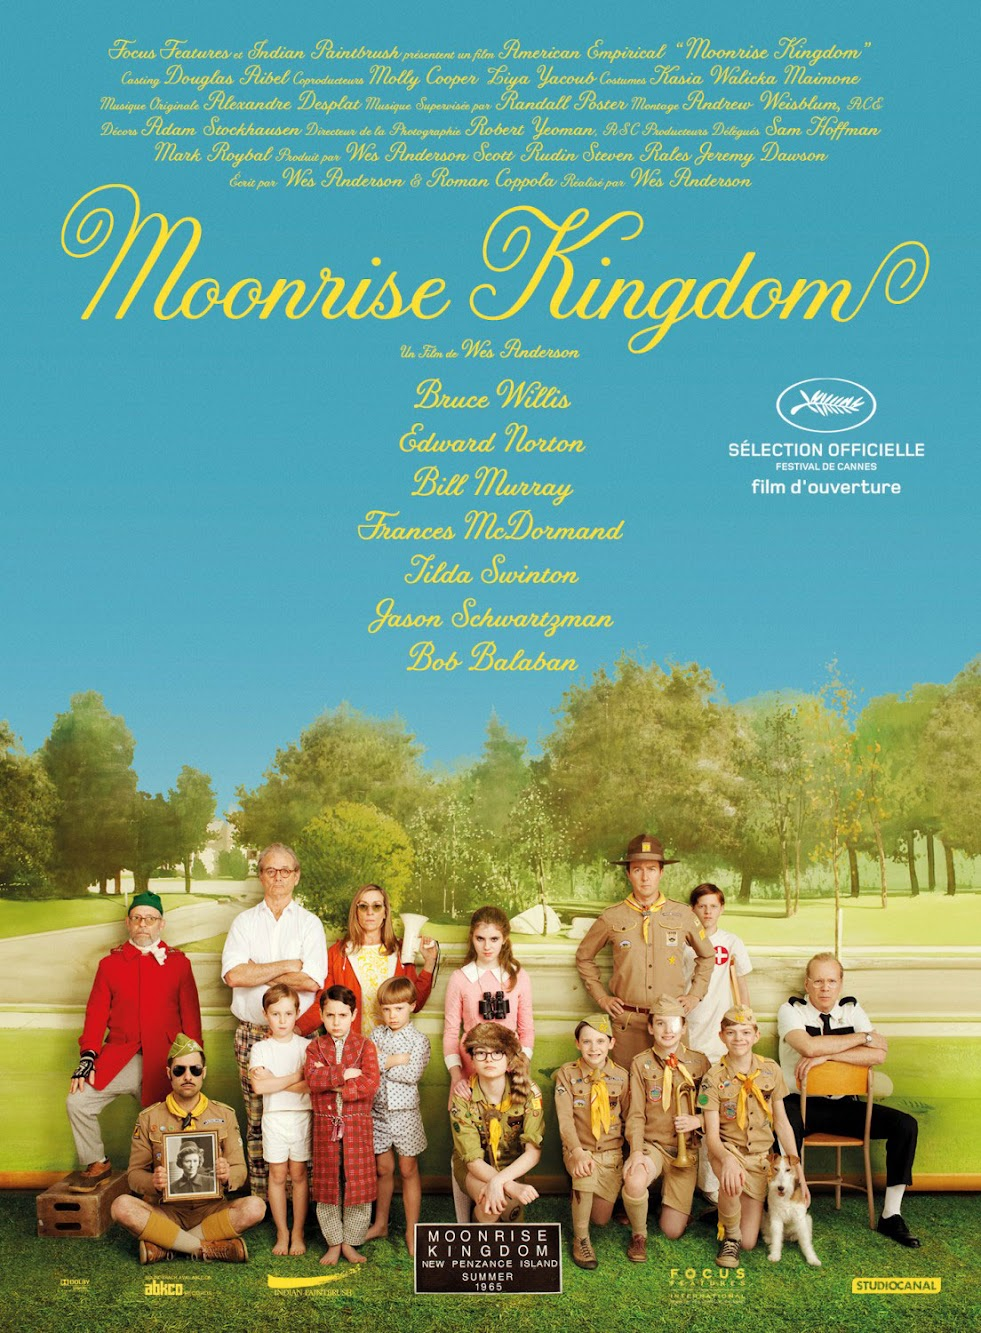 Movie Review: Moonrise Kingdom (2012)